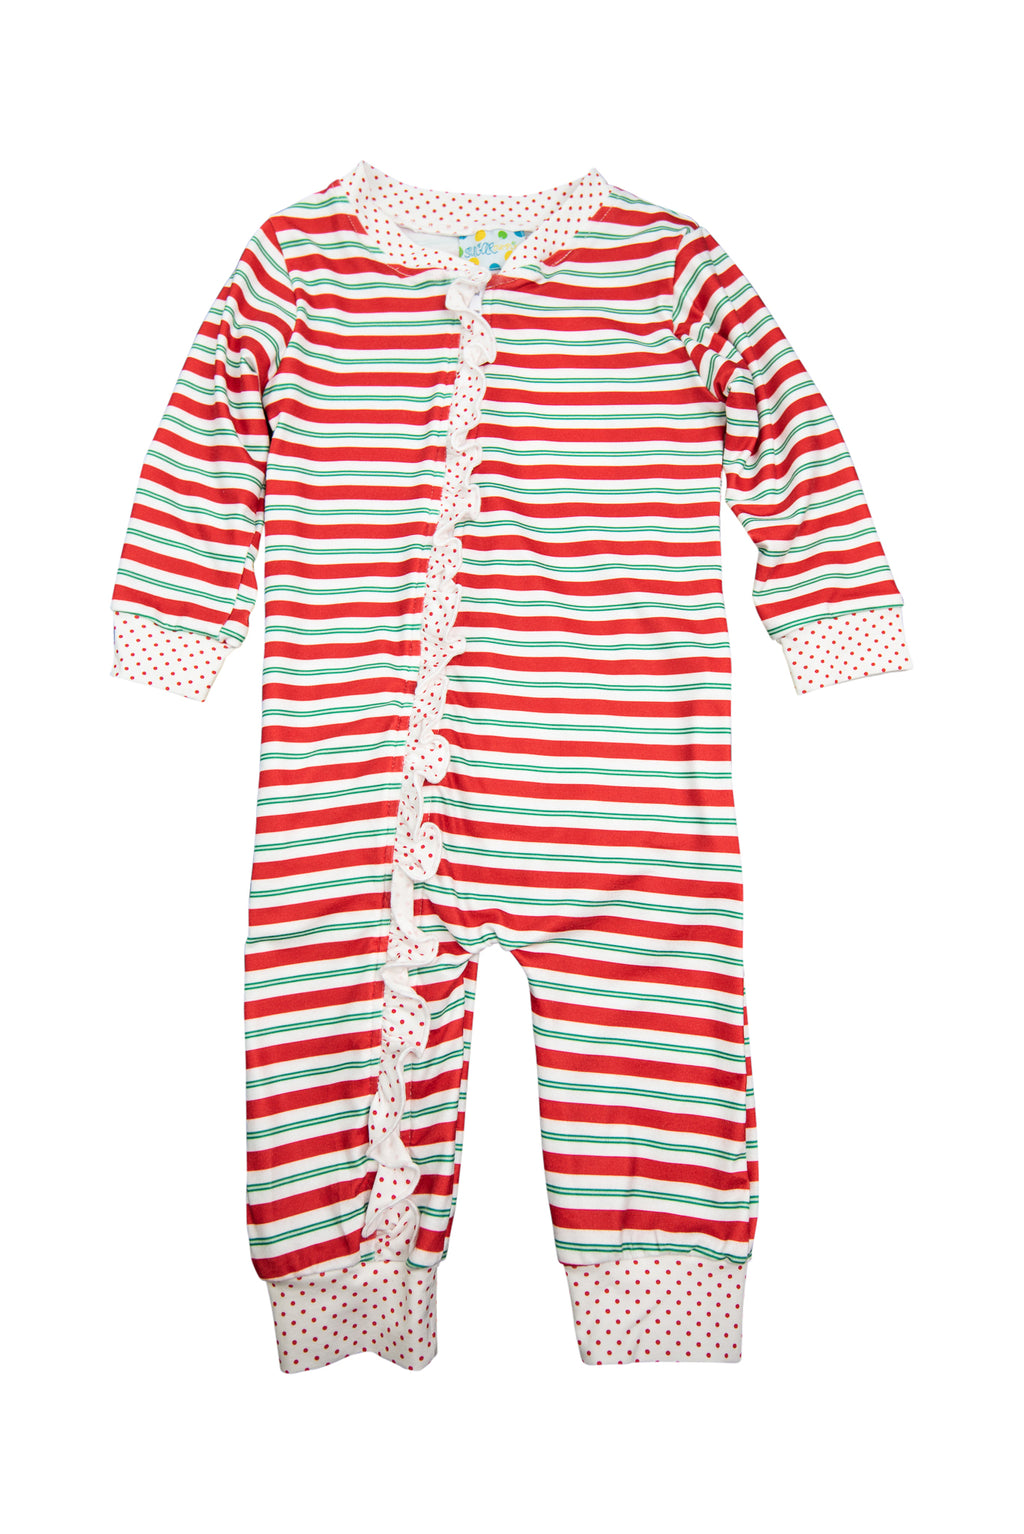 Girls Red/Green Stripe Ruffle Zip Up PJ